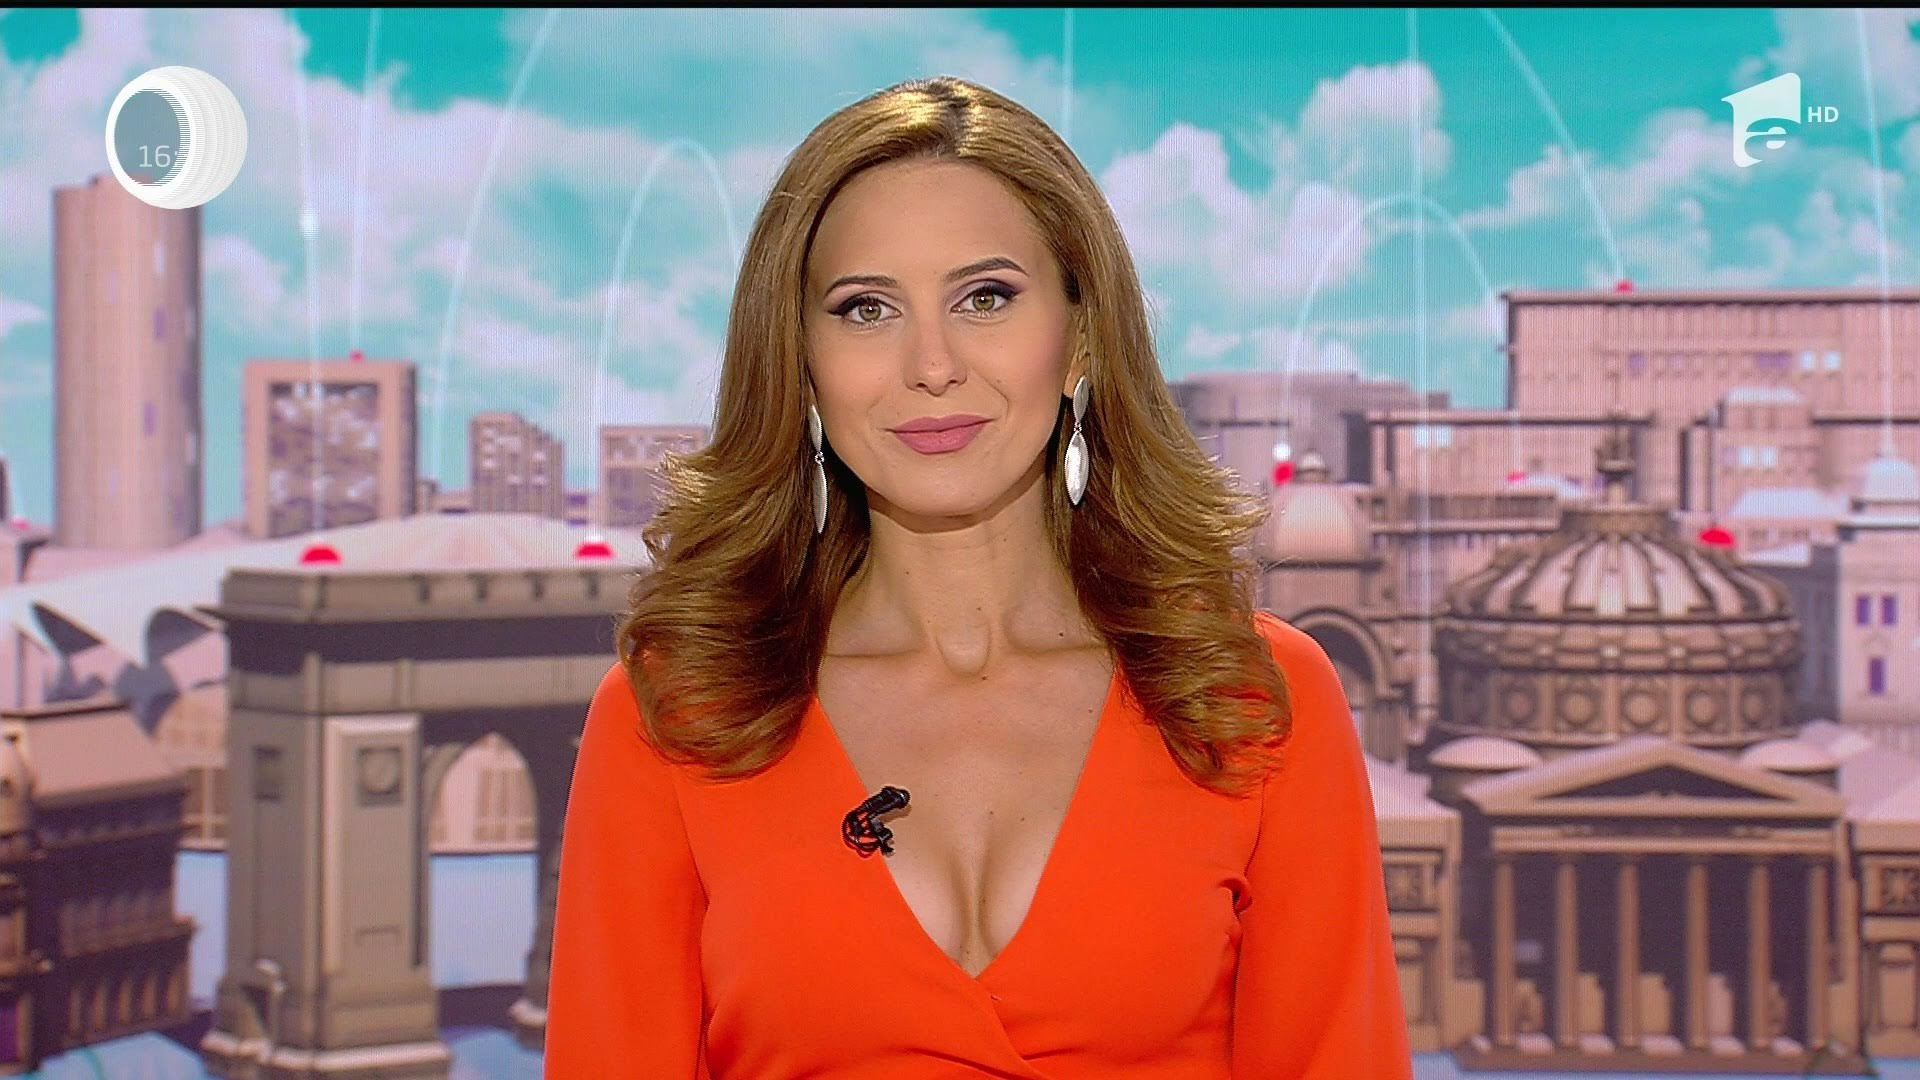 Such a fascinating news anchor!